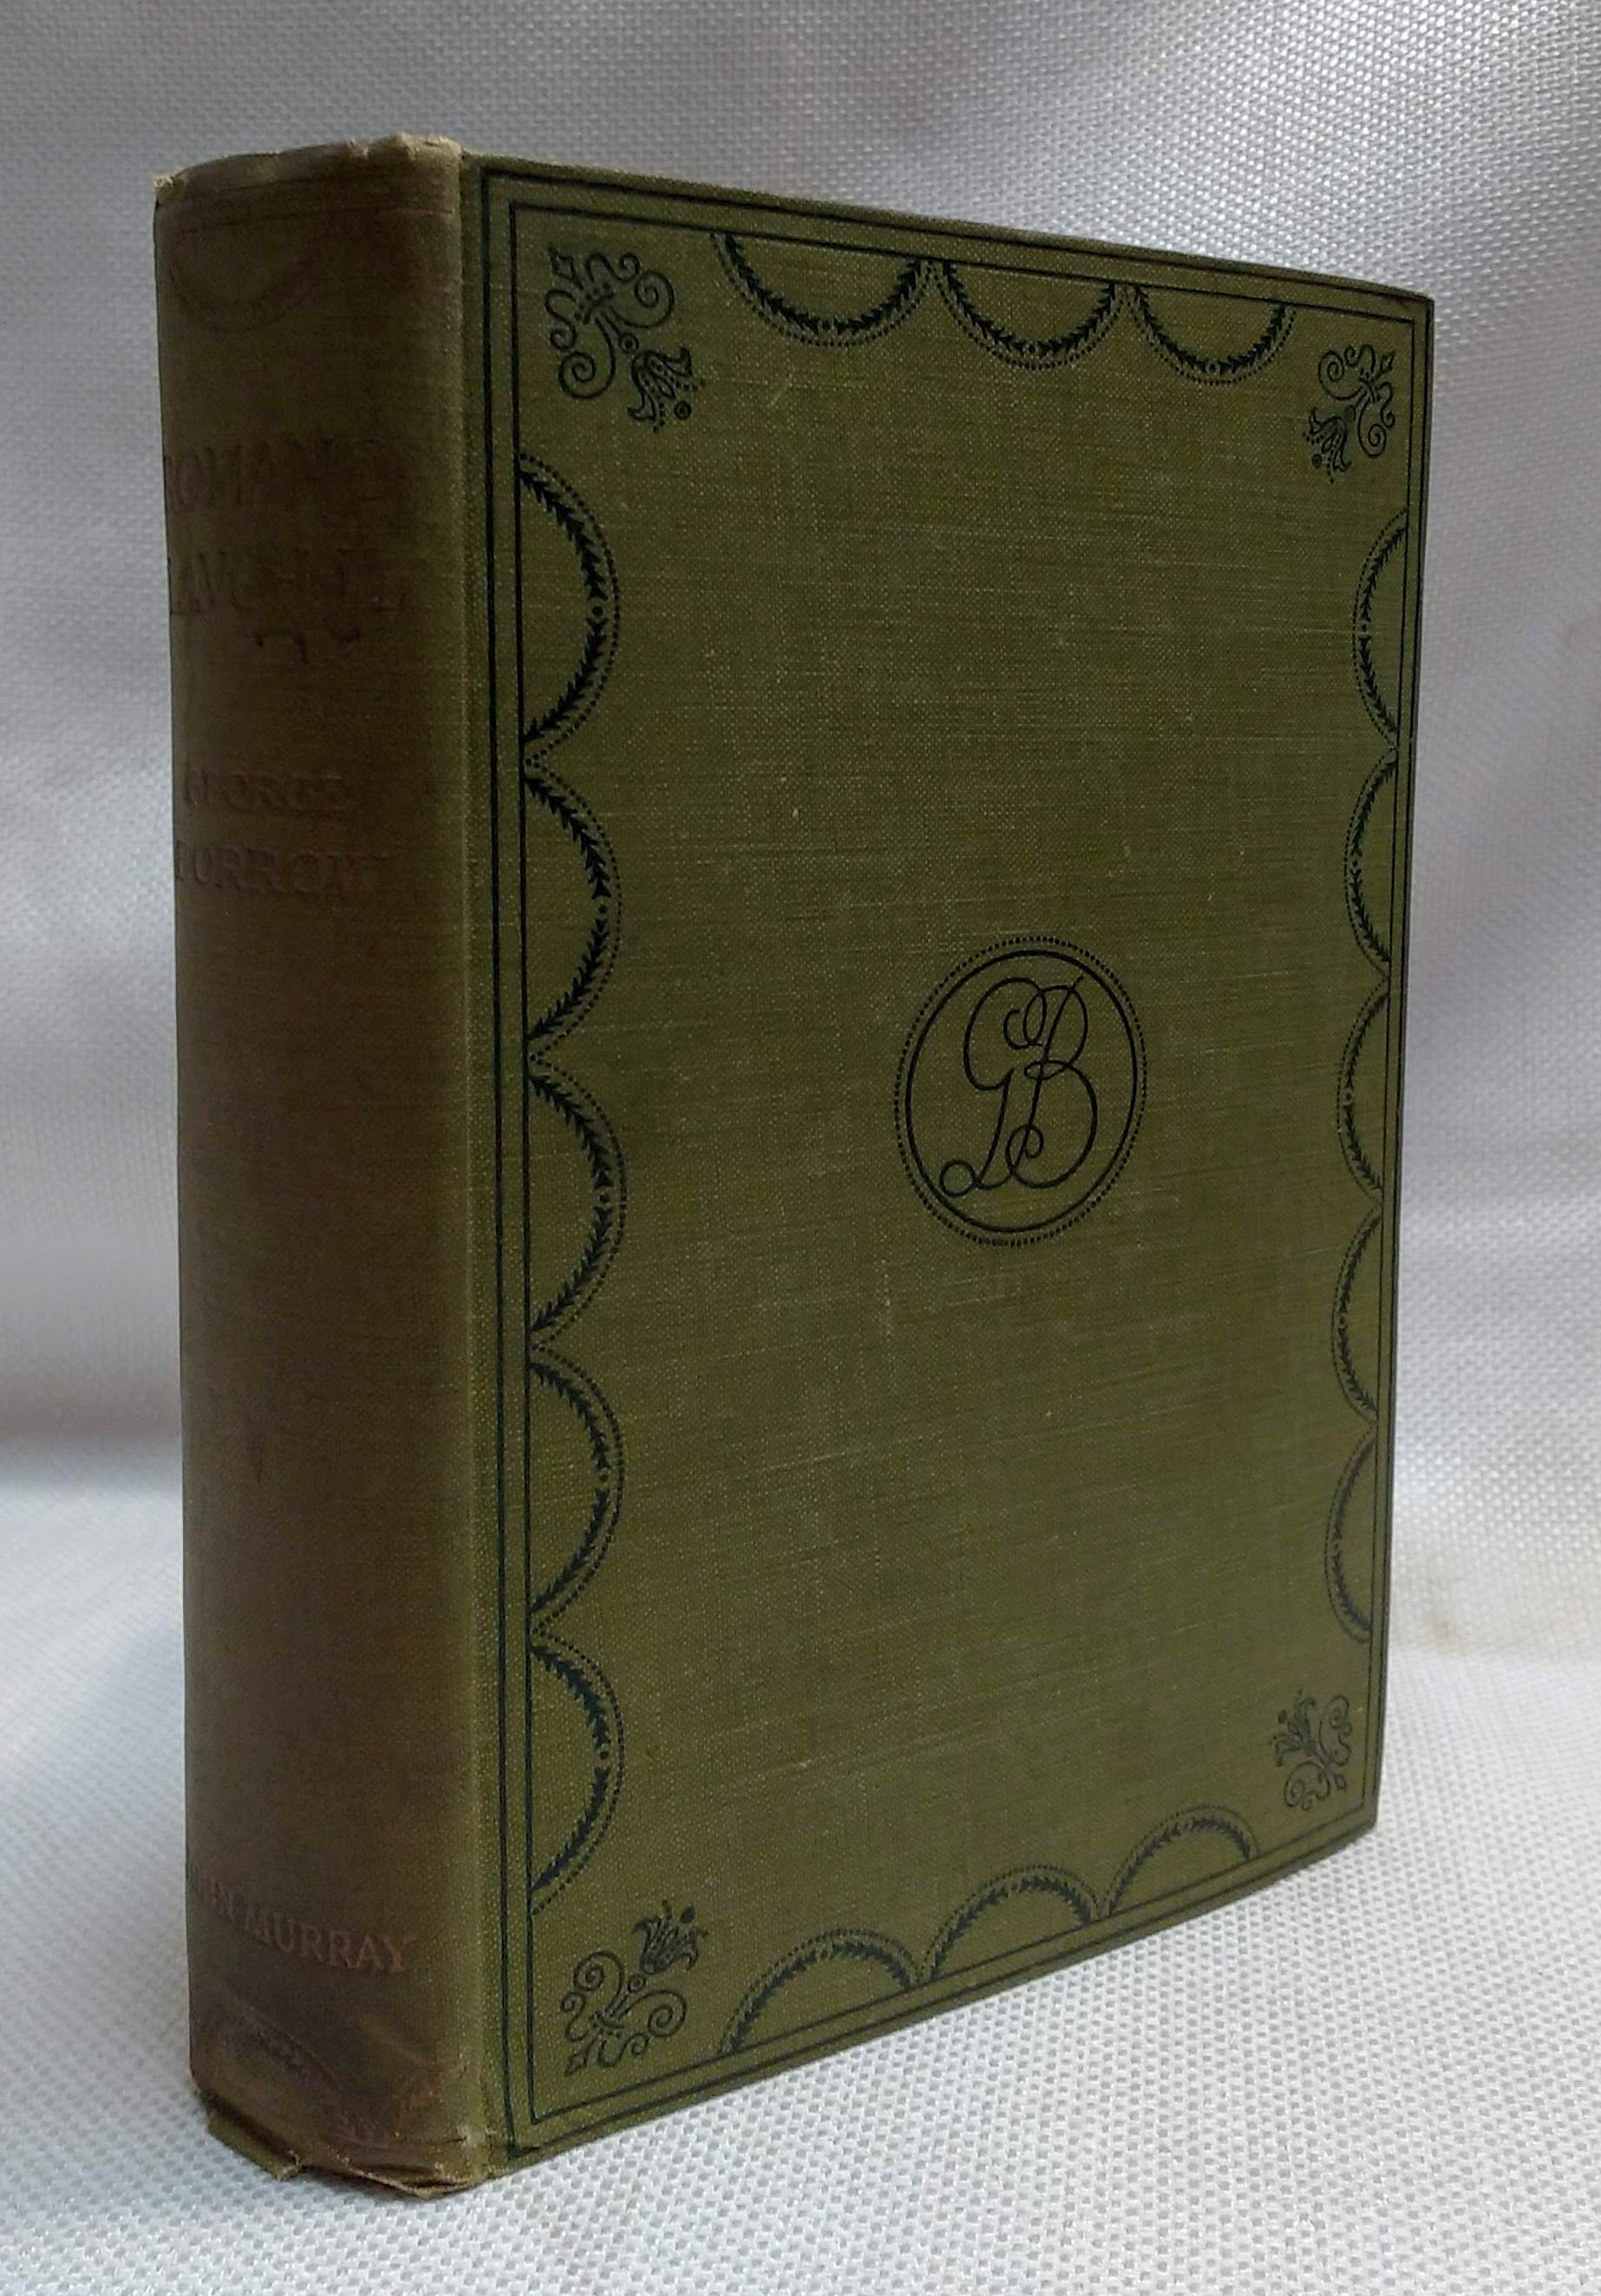 Romano lavo-lil: Word-book of the Romany; or, English Gypsy language, Borrow, George Henry